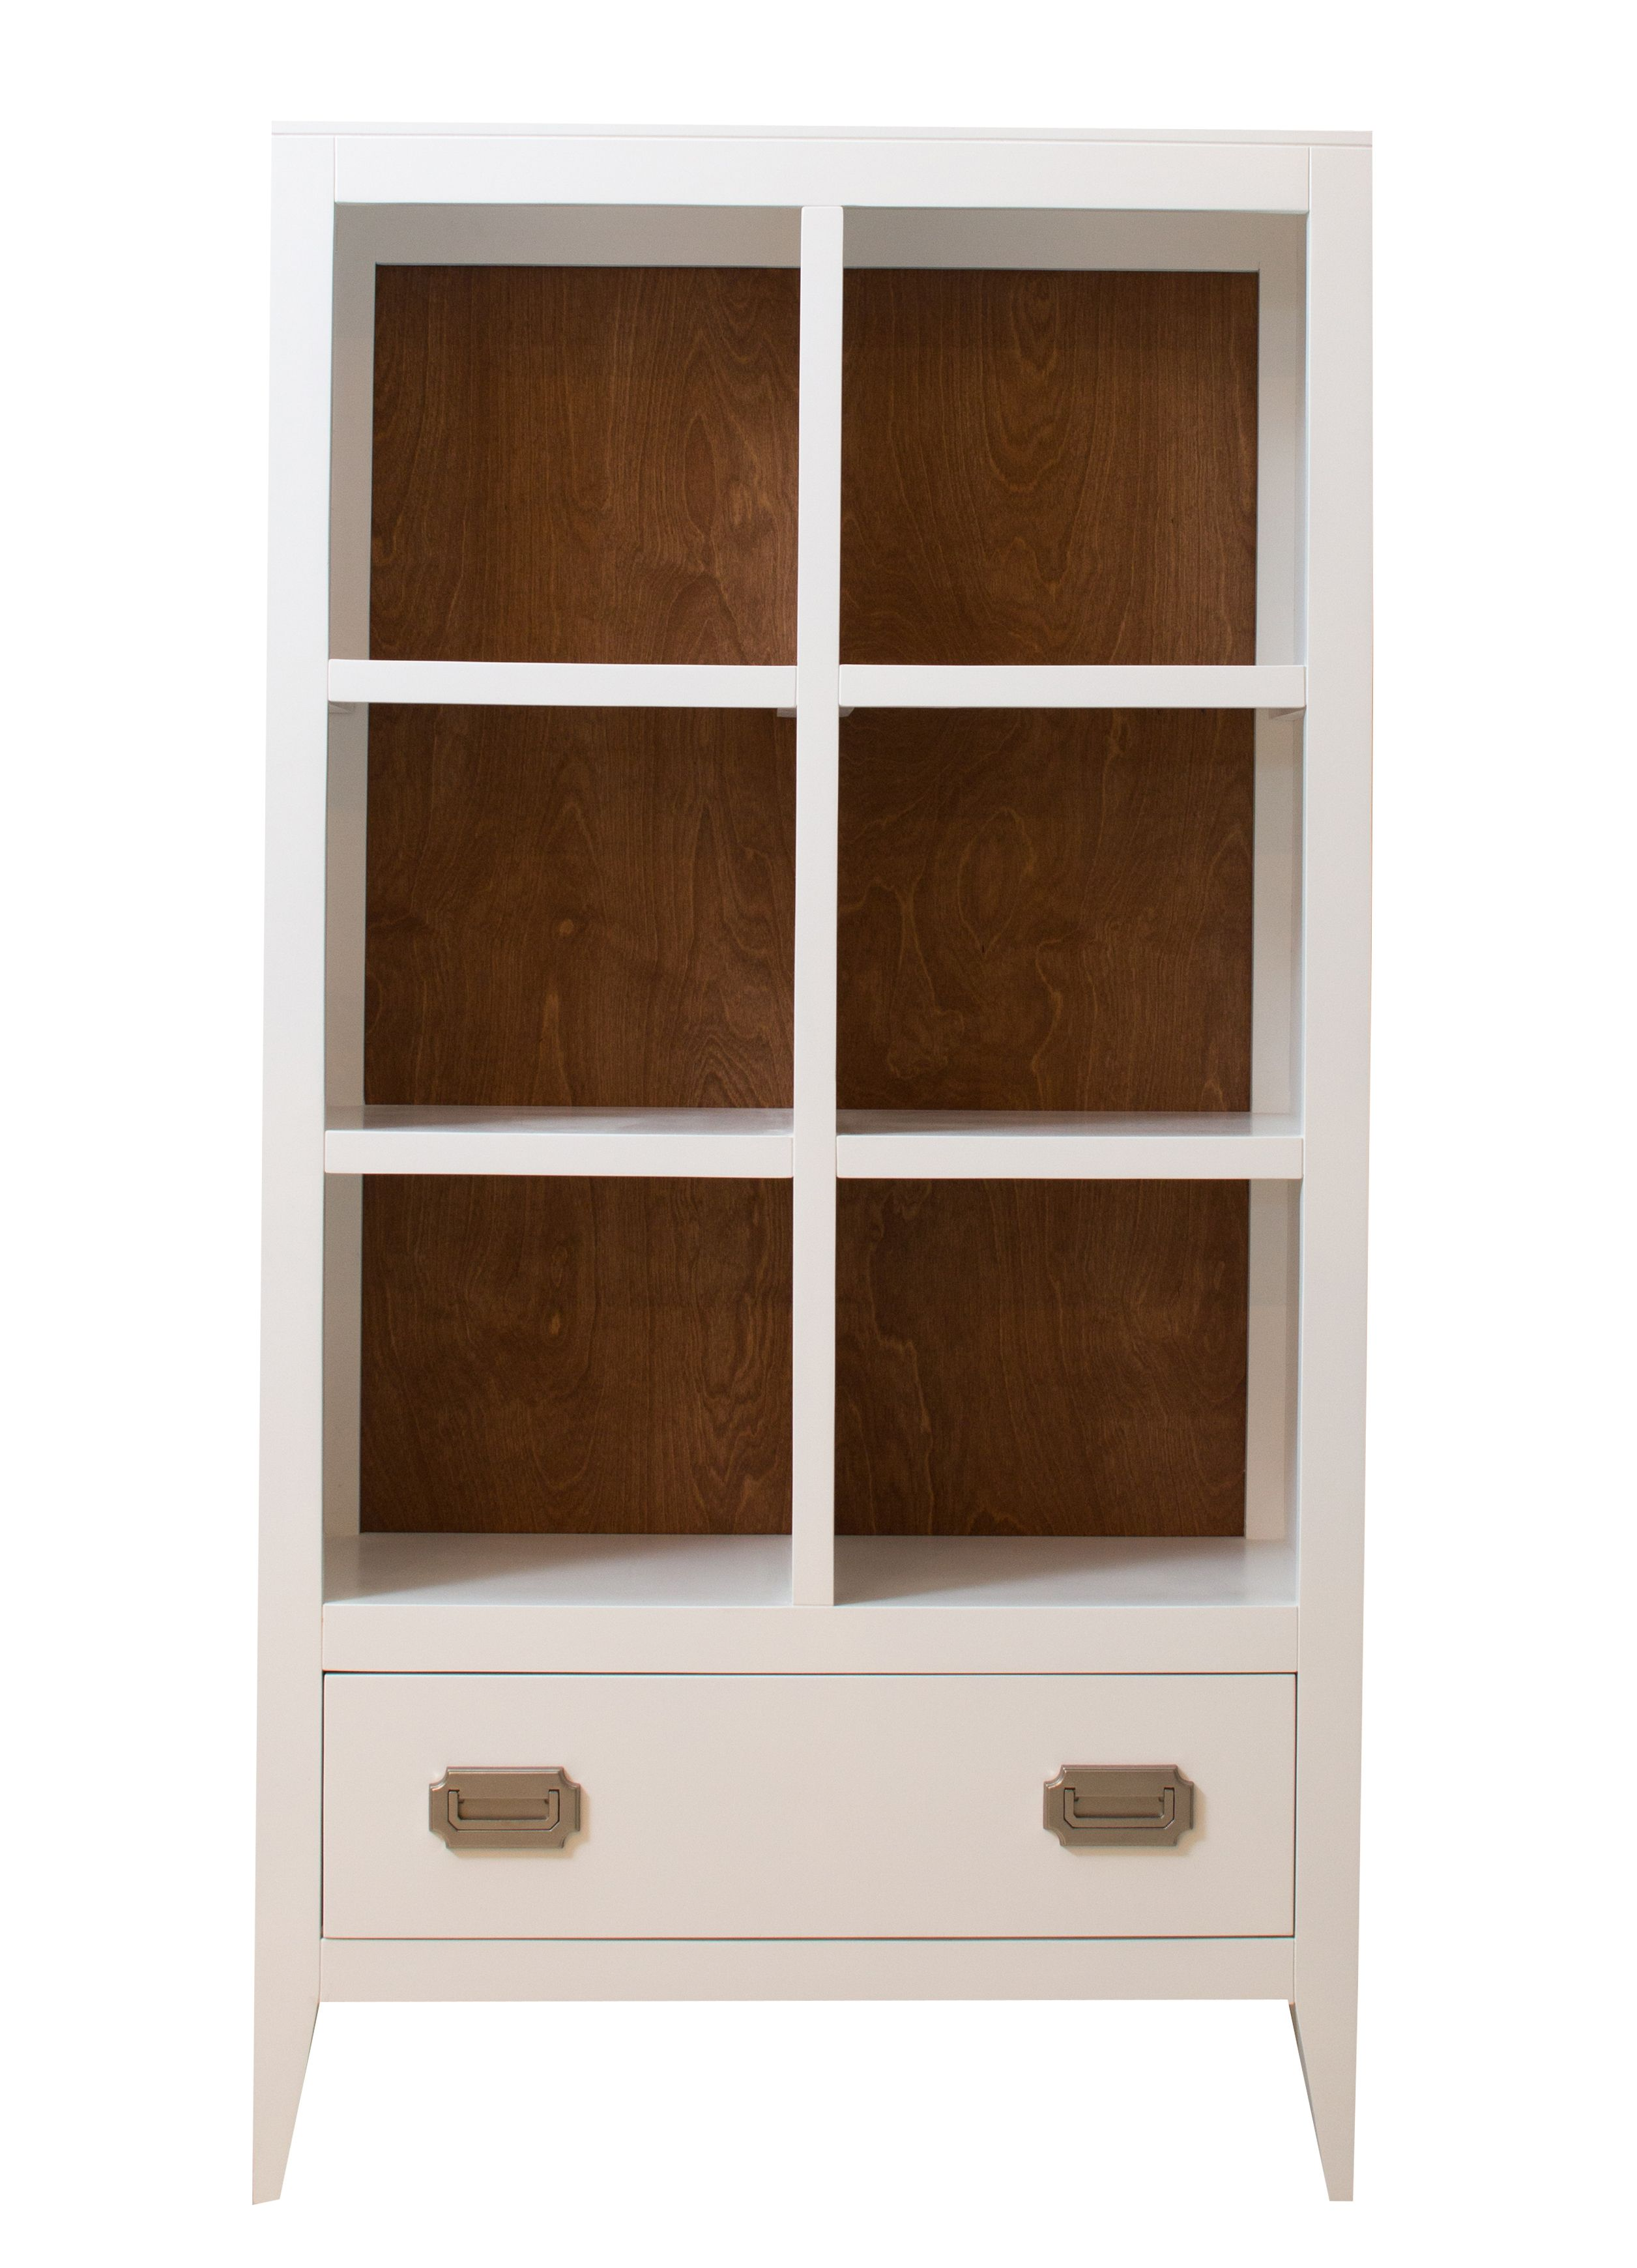 New Devon Bookcase with Drawer by Newport Cottages. Modern